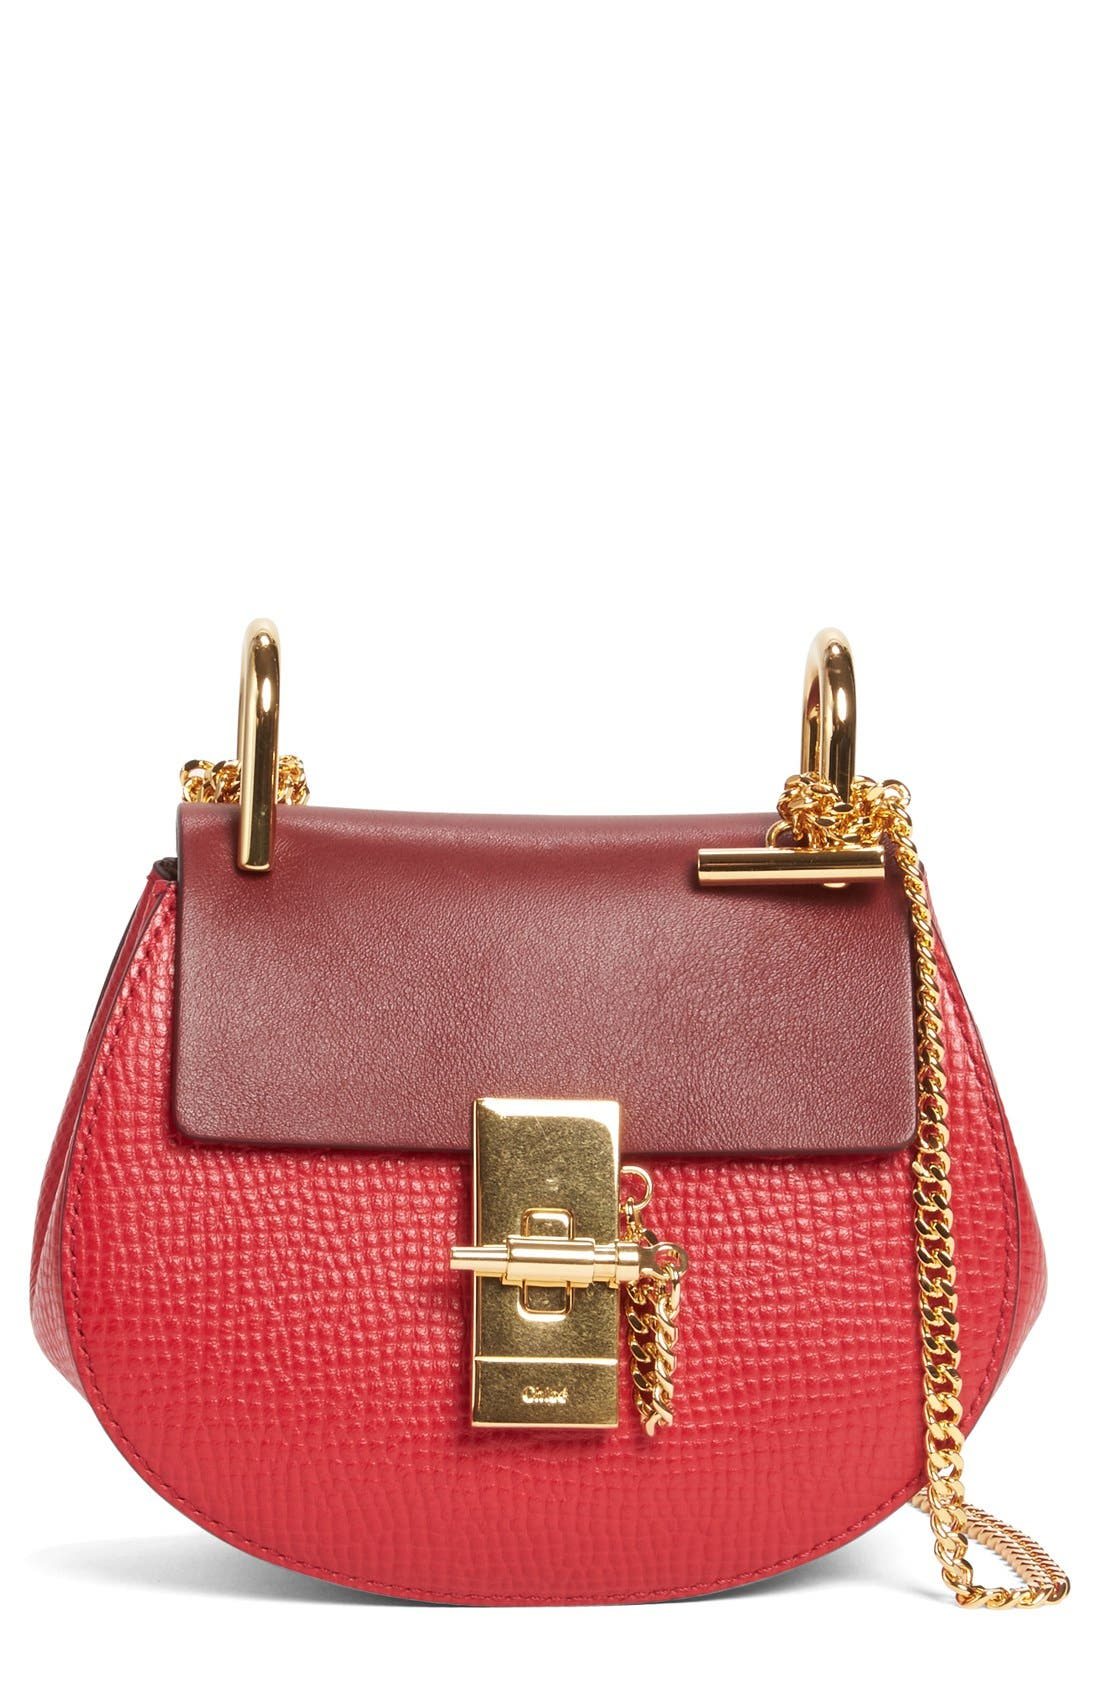 Main Image - Chloé Nano Drew Calfskin Shoulder Bag